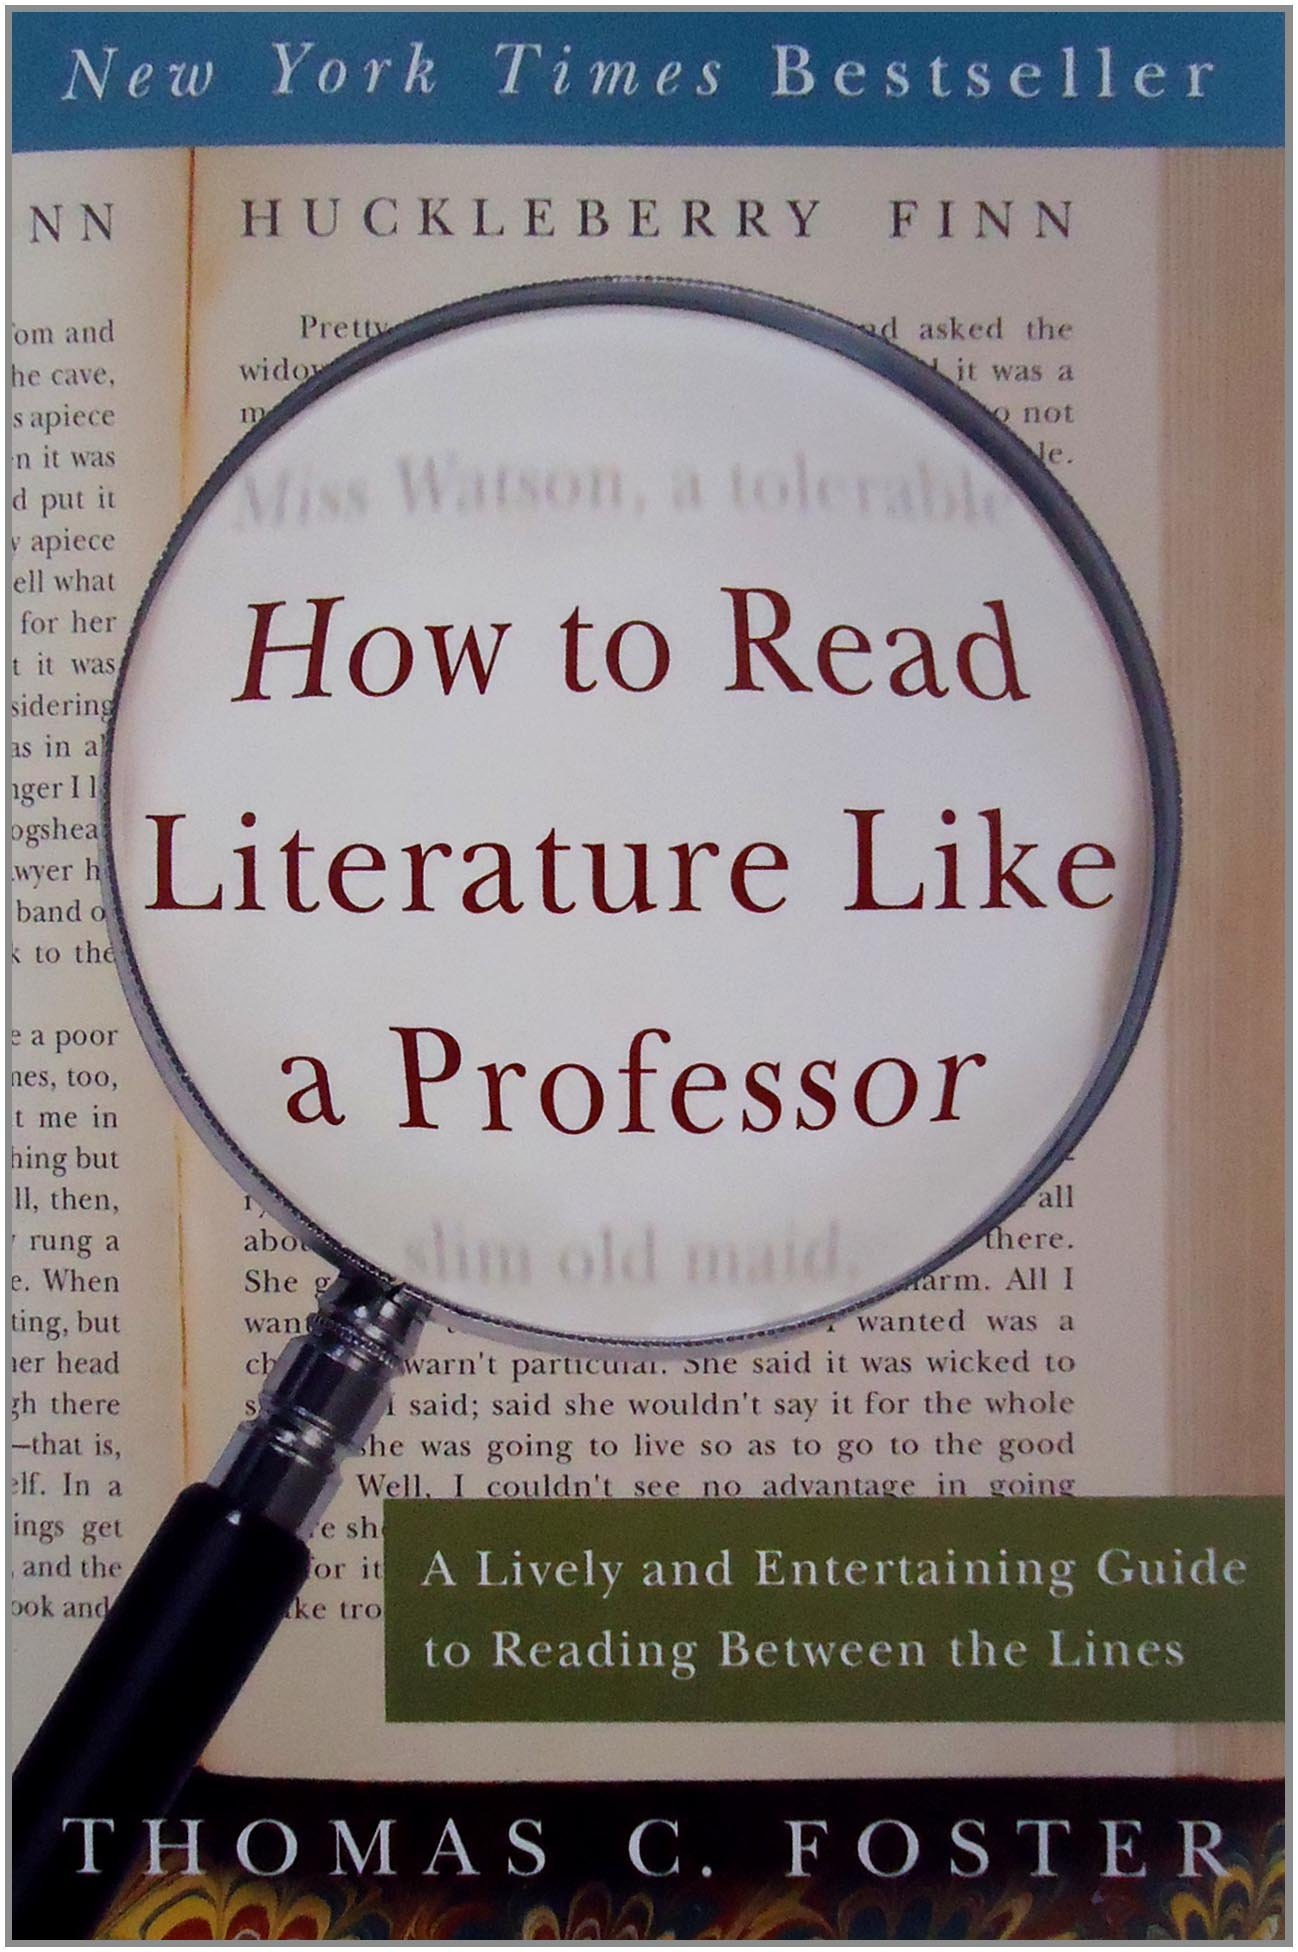 How to Read Literature Like a Professor: Amazon.co.uk: Thomas C ...